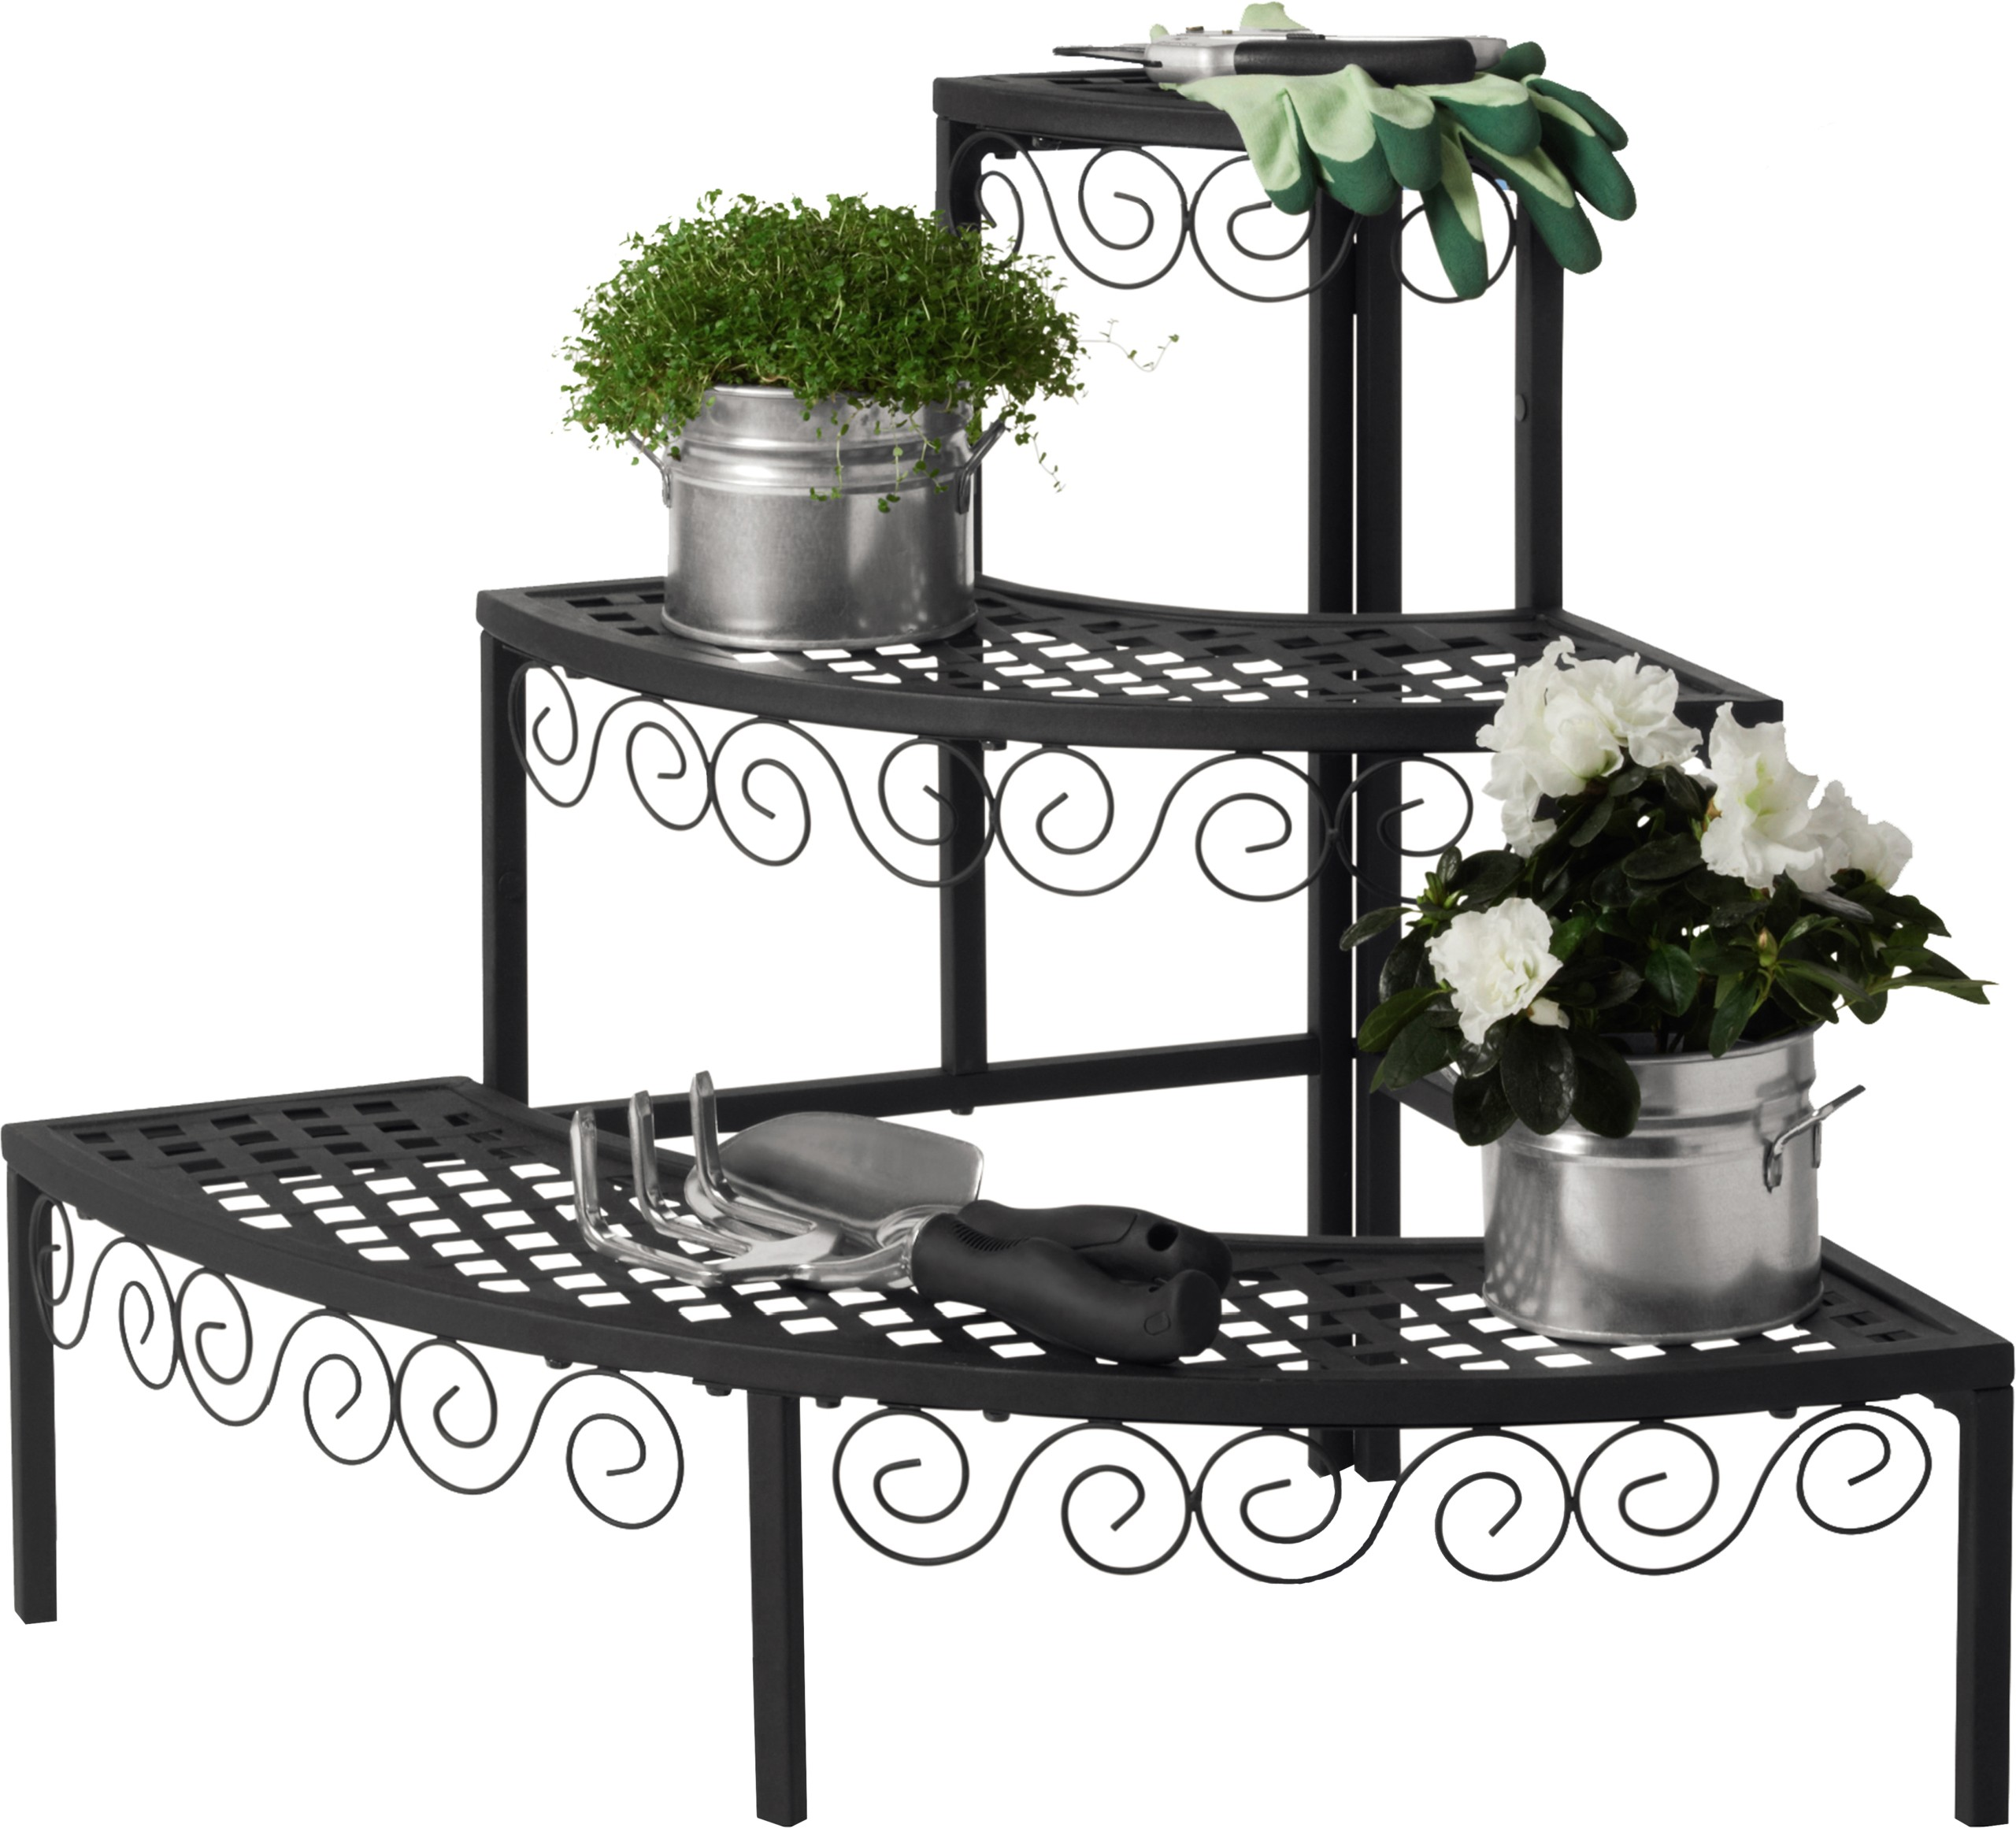 3 Tier Corner Plant Stand Classic Style For Indoor Outdoor Patio Garden Flowers